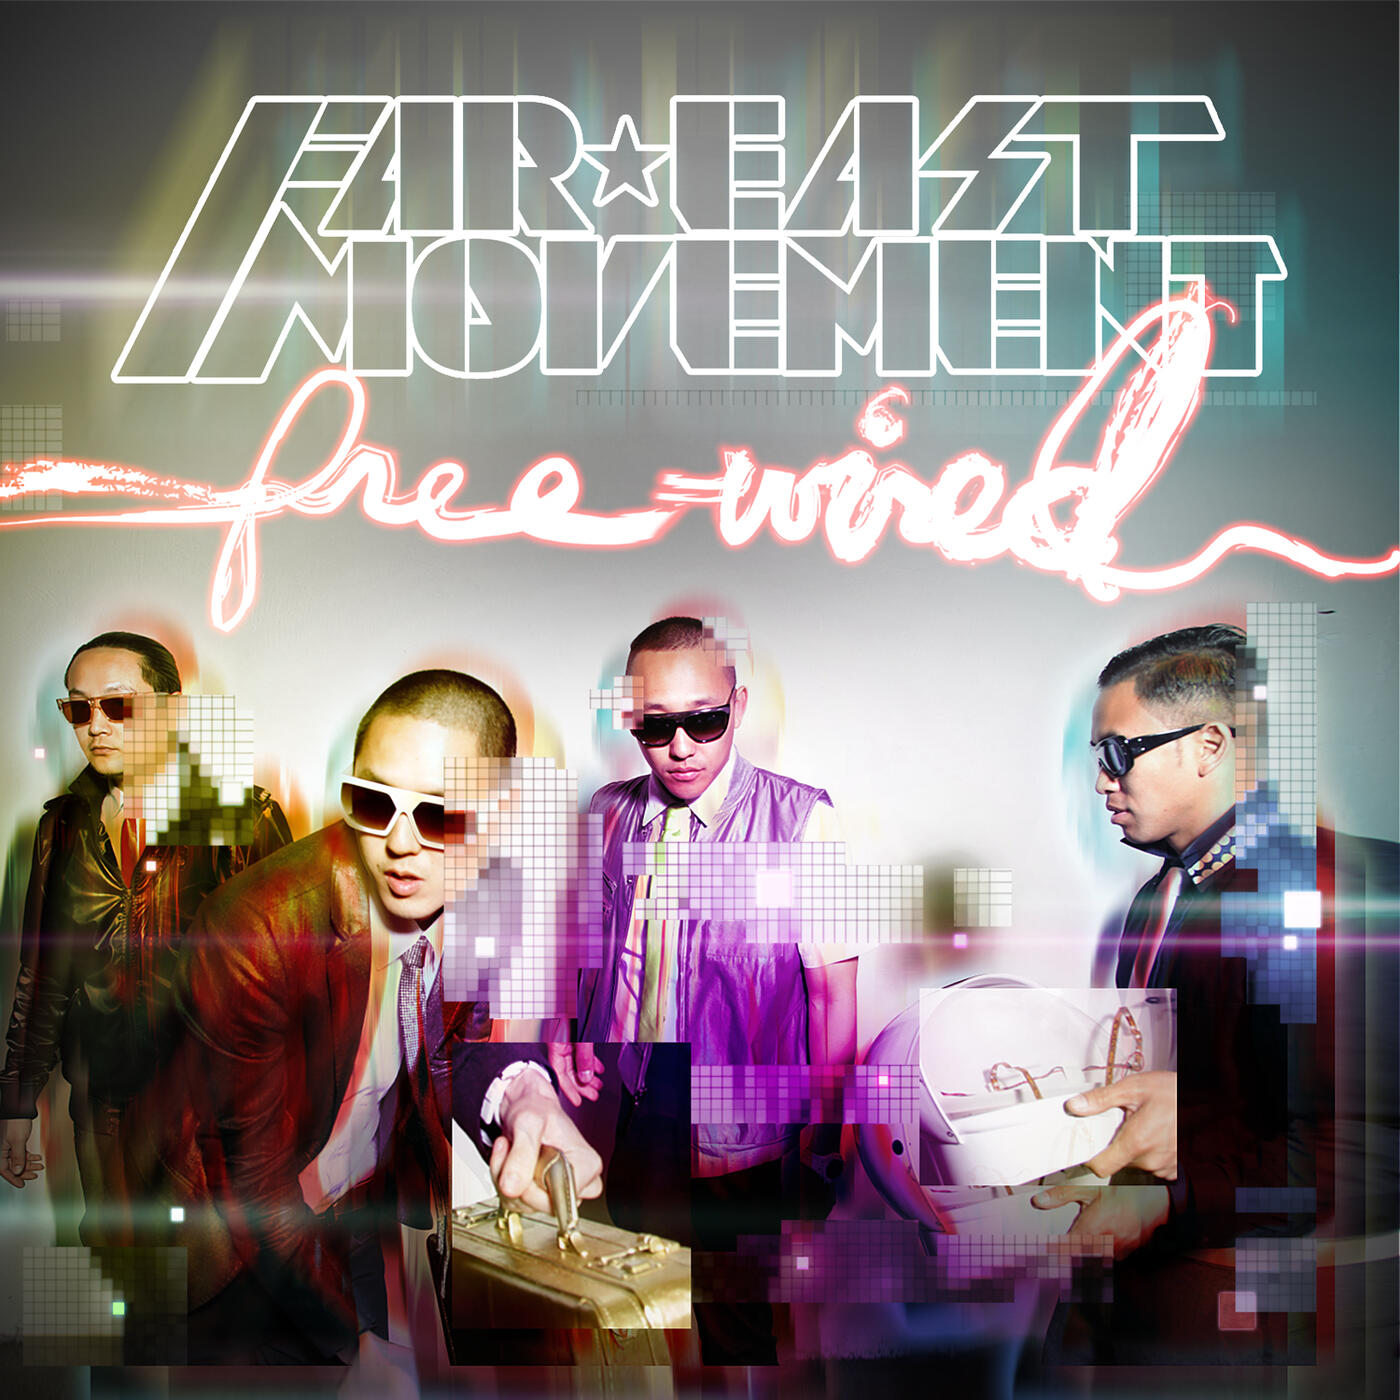 download if i was you far east movement